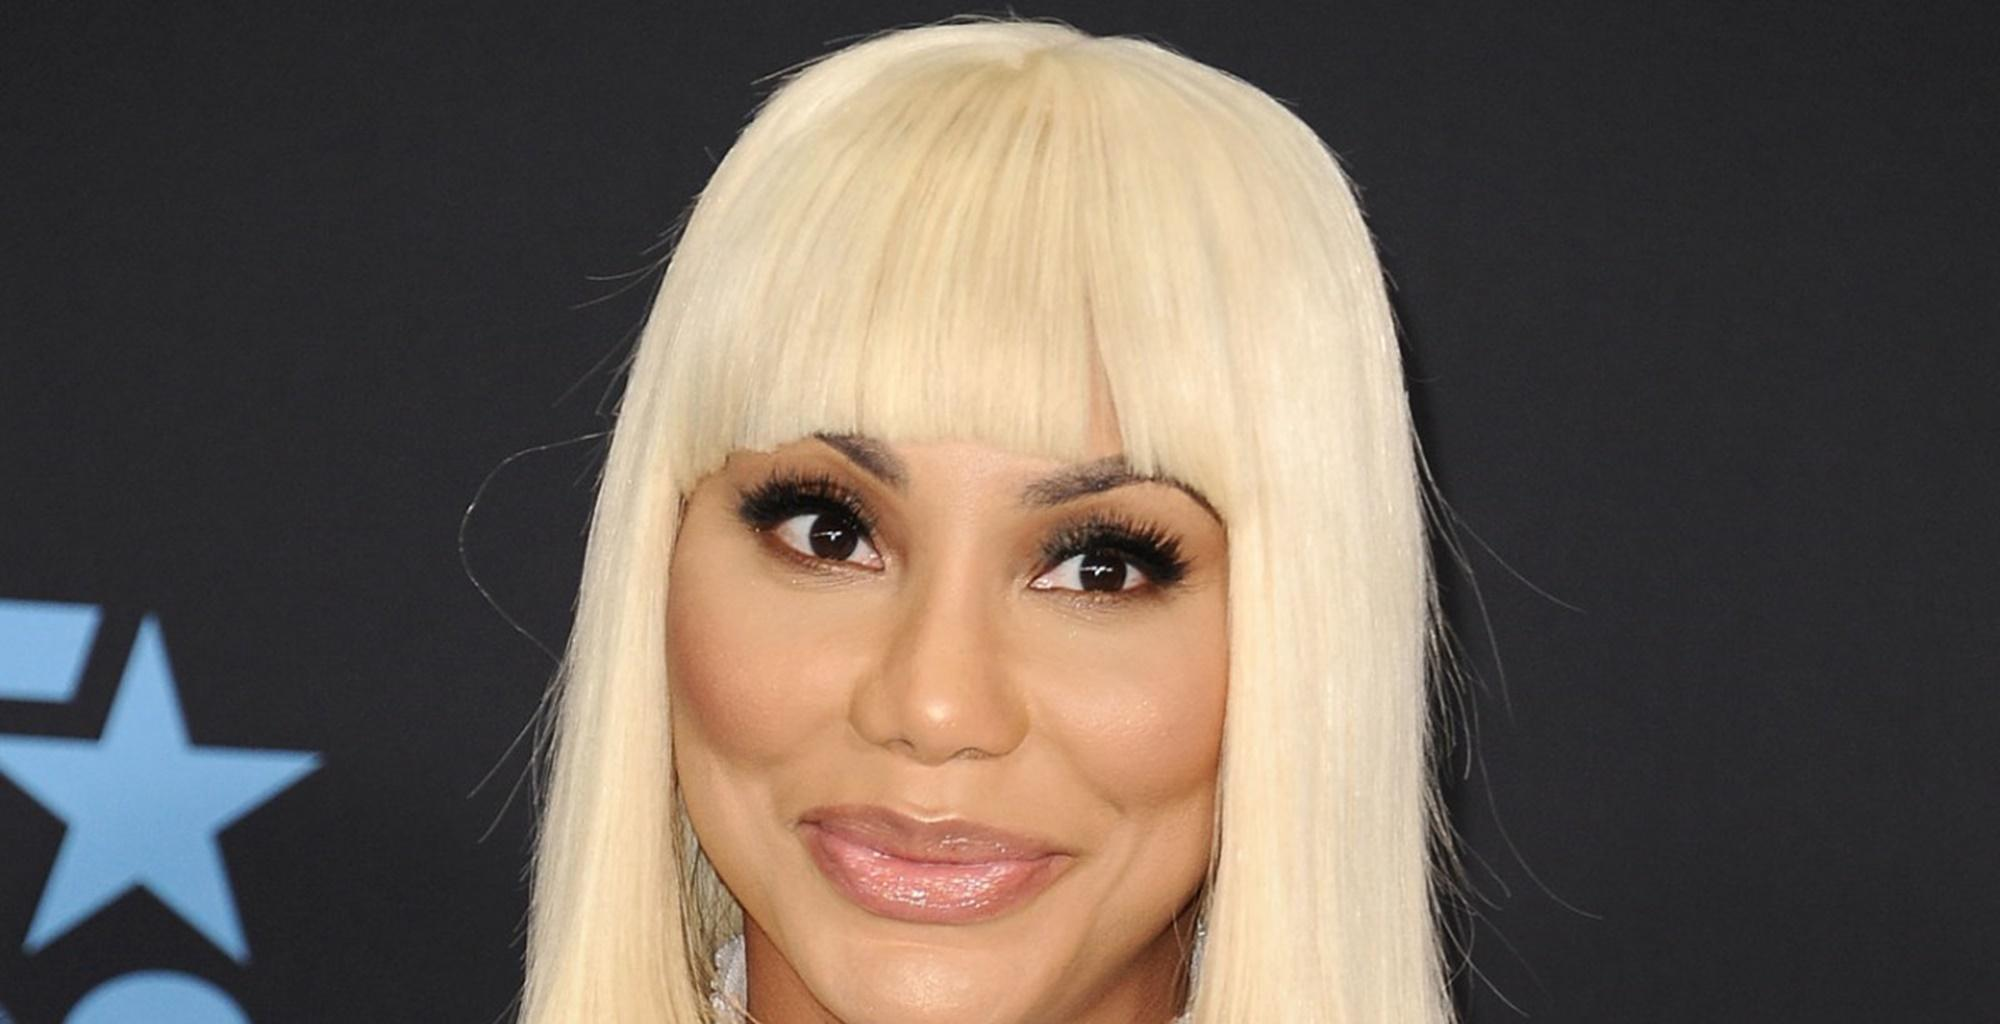 Tamar Braxton Bares Lots Of Skin In Kandi Burruss Dungeon Show Picture -- She Is Flaunting  'The Body Underneath Those Church Clothes' As Some Compare Her To Christina Aguilera